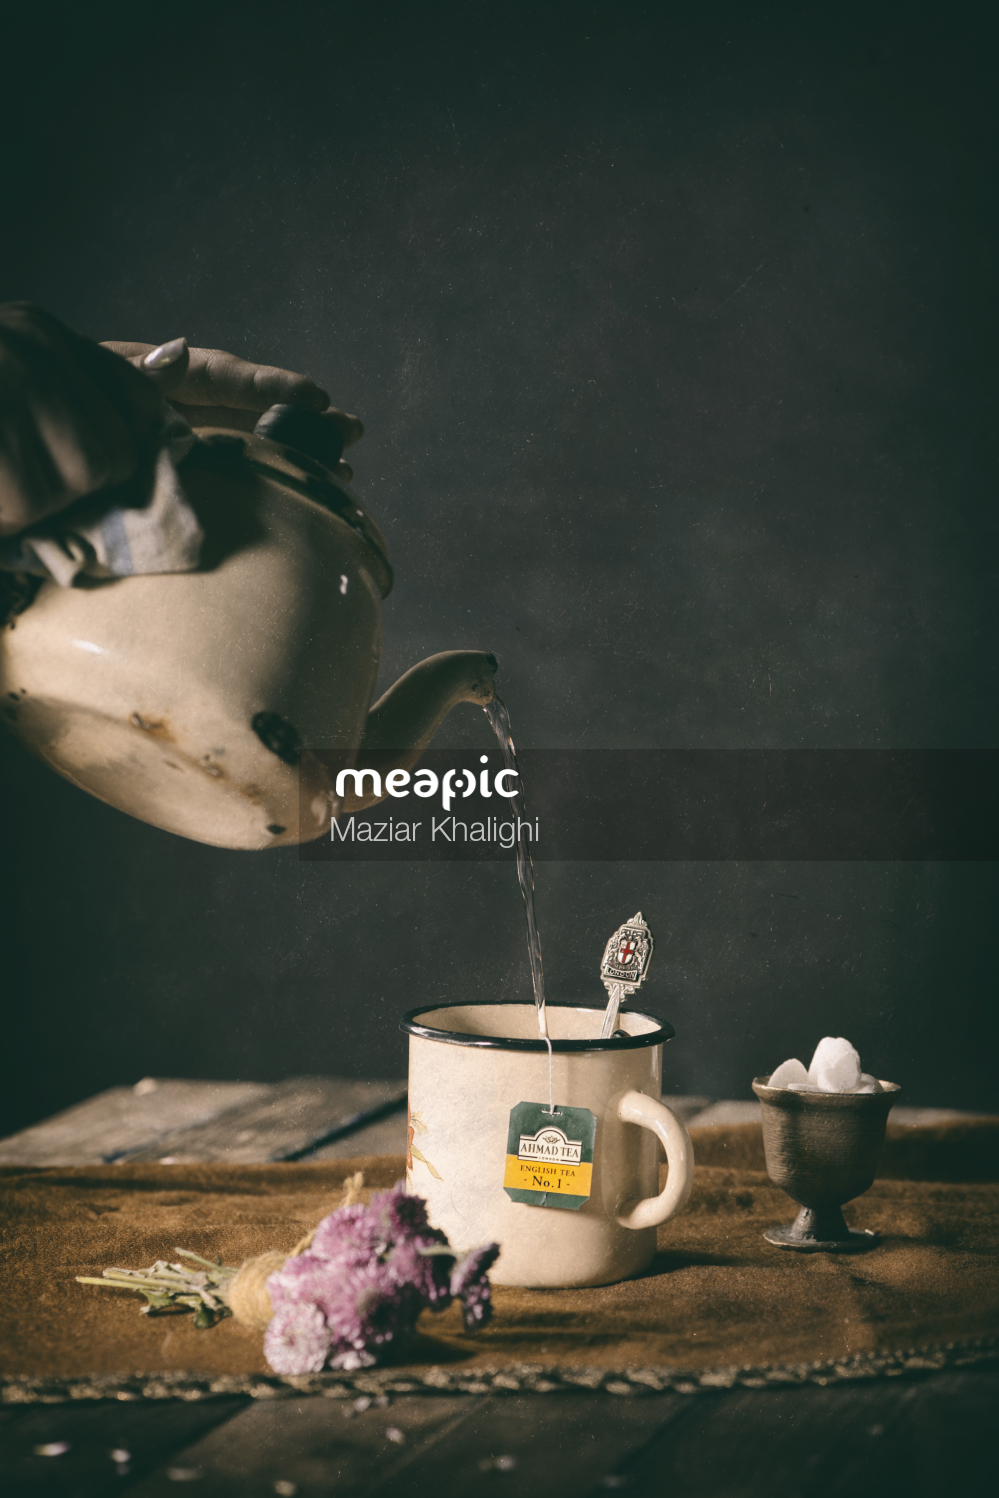 Cup Of Coffee And A Vase Of Flowers On A Table Stock Photo · Meapic